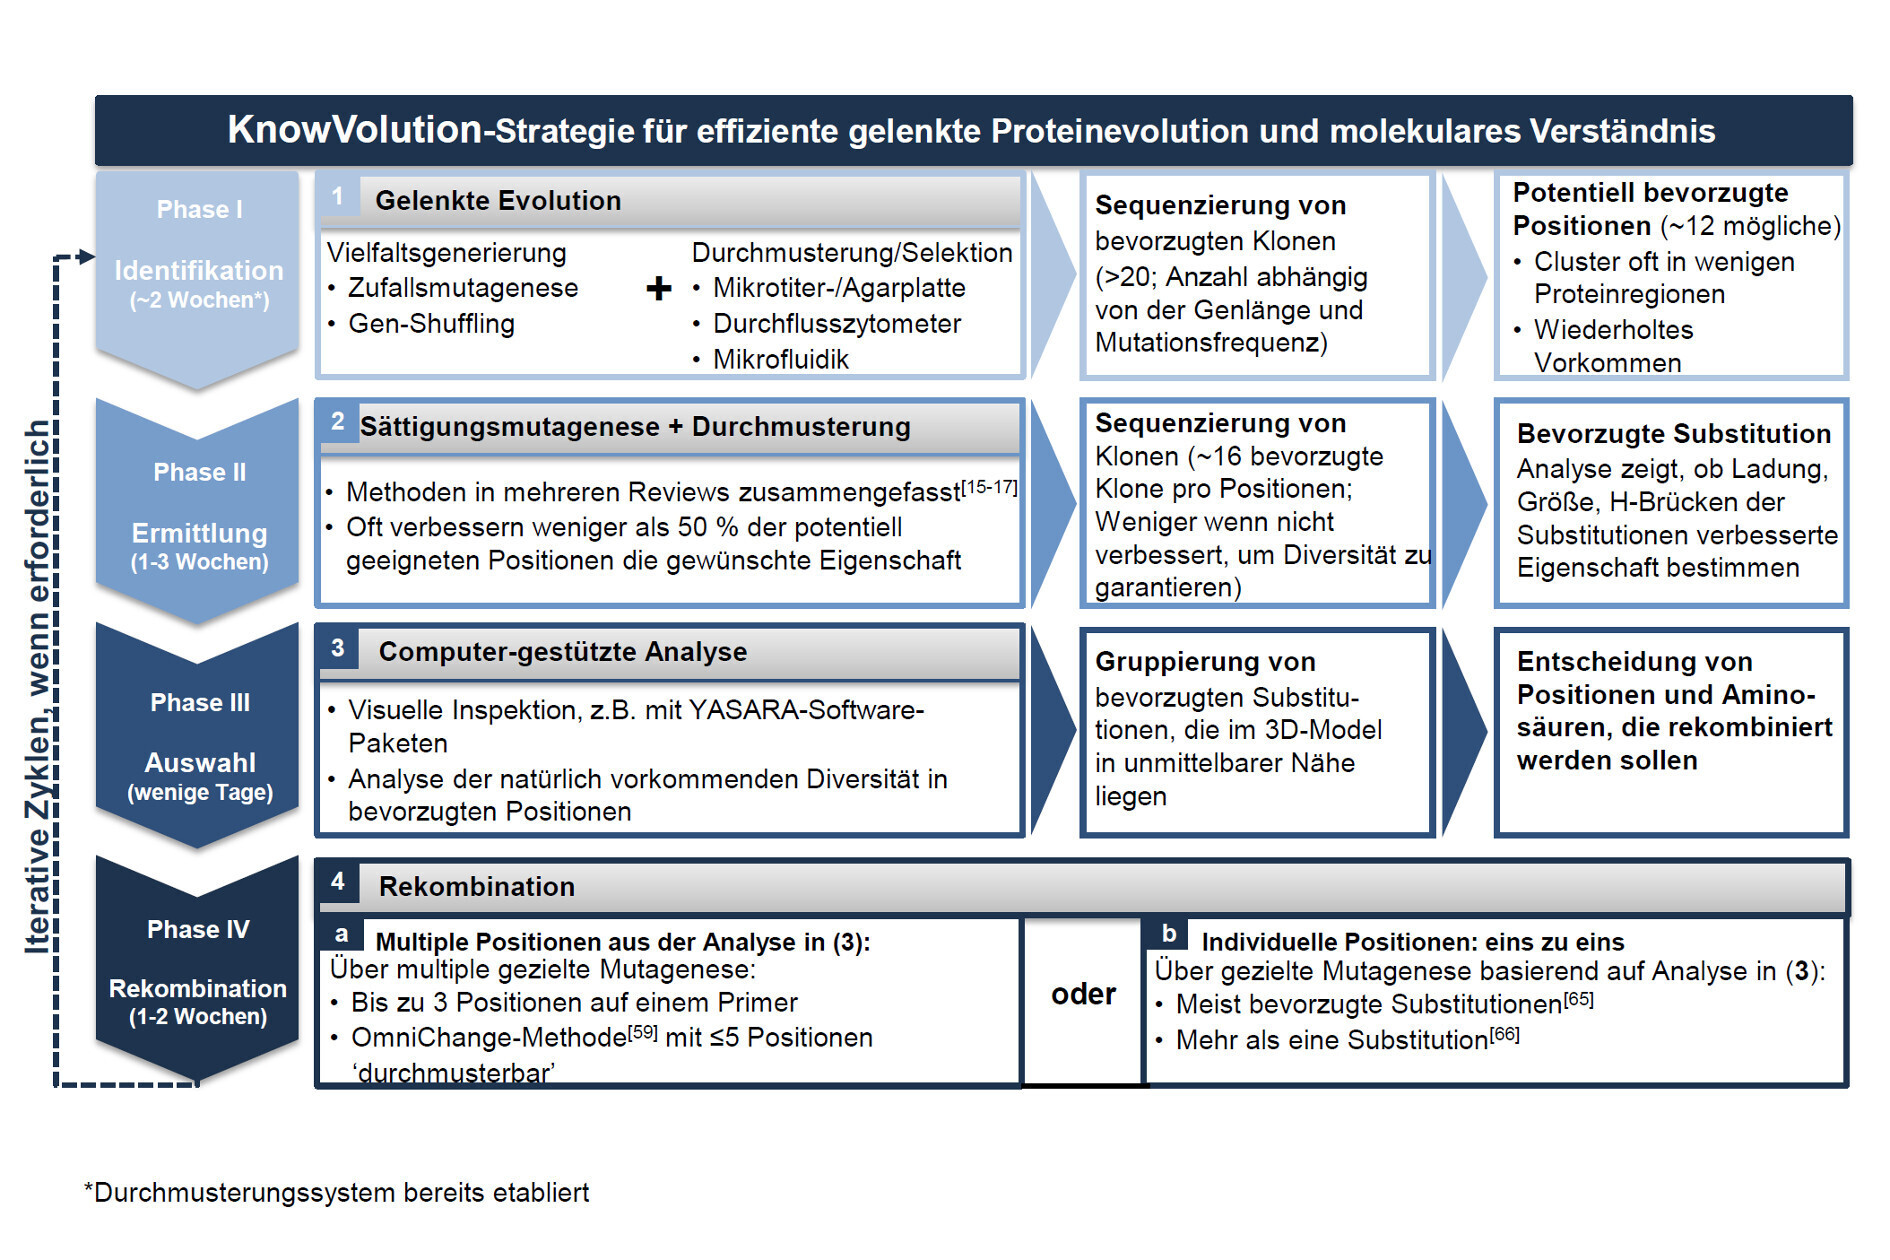 KnowVolution Strategie